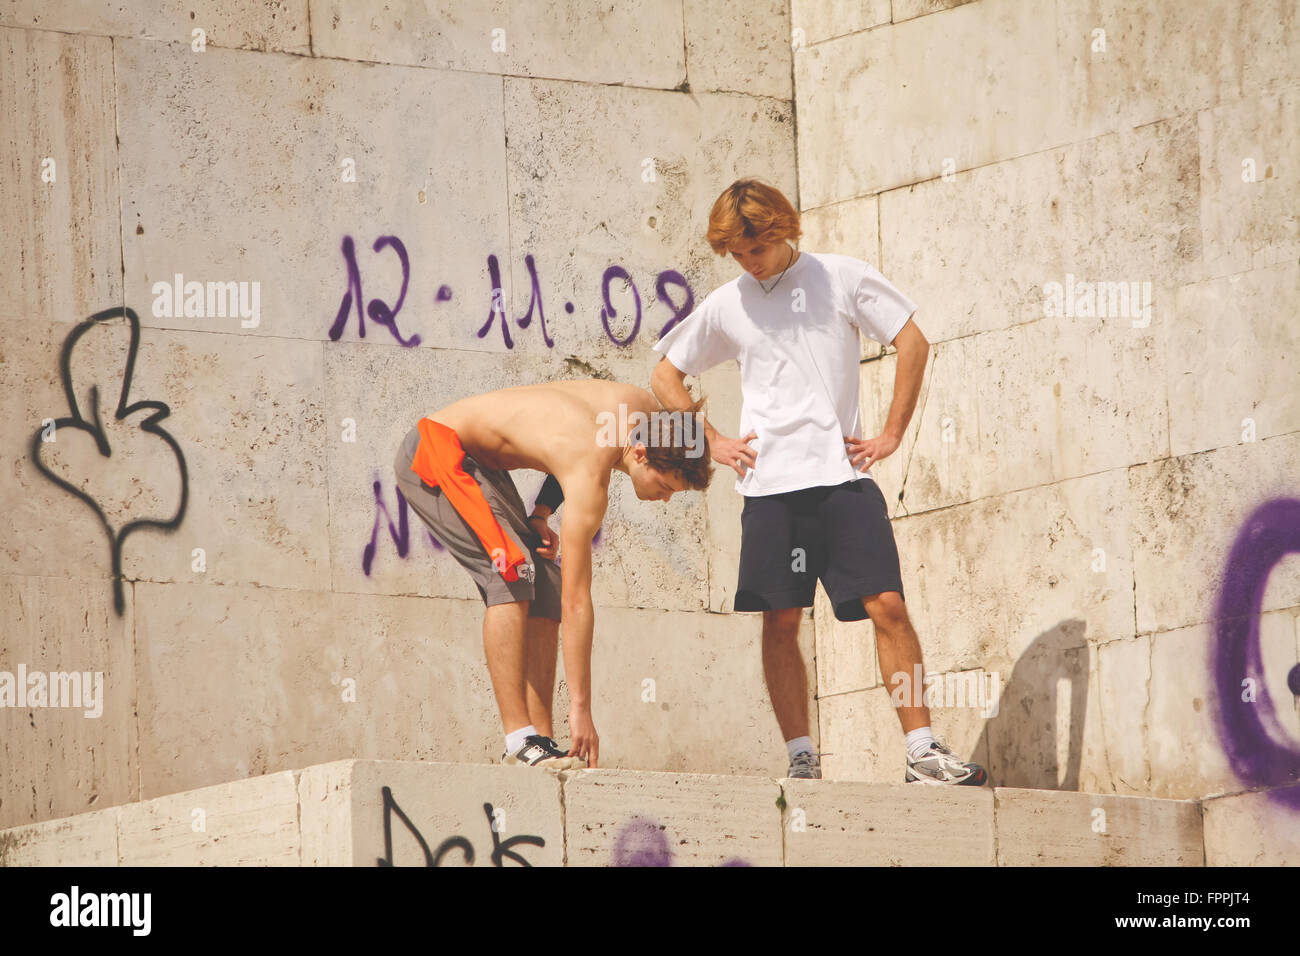 Rome, Italy - March 14, 2010: unidentified young men training in parkour.. - Stock Image